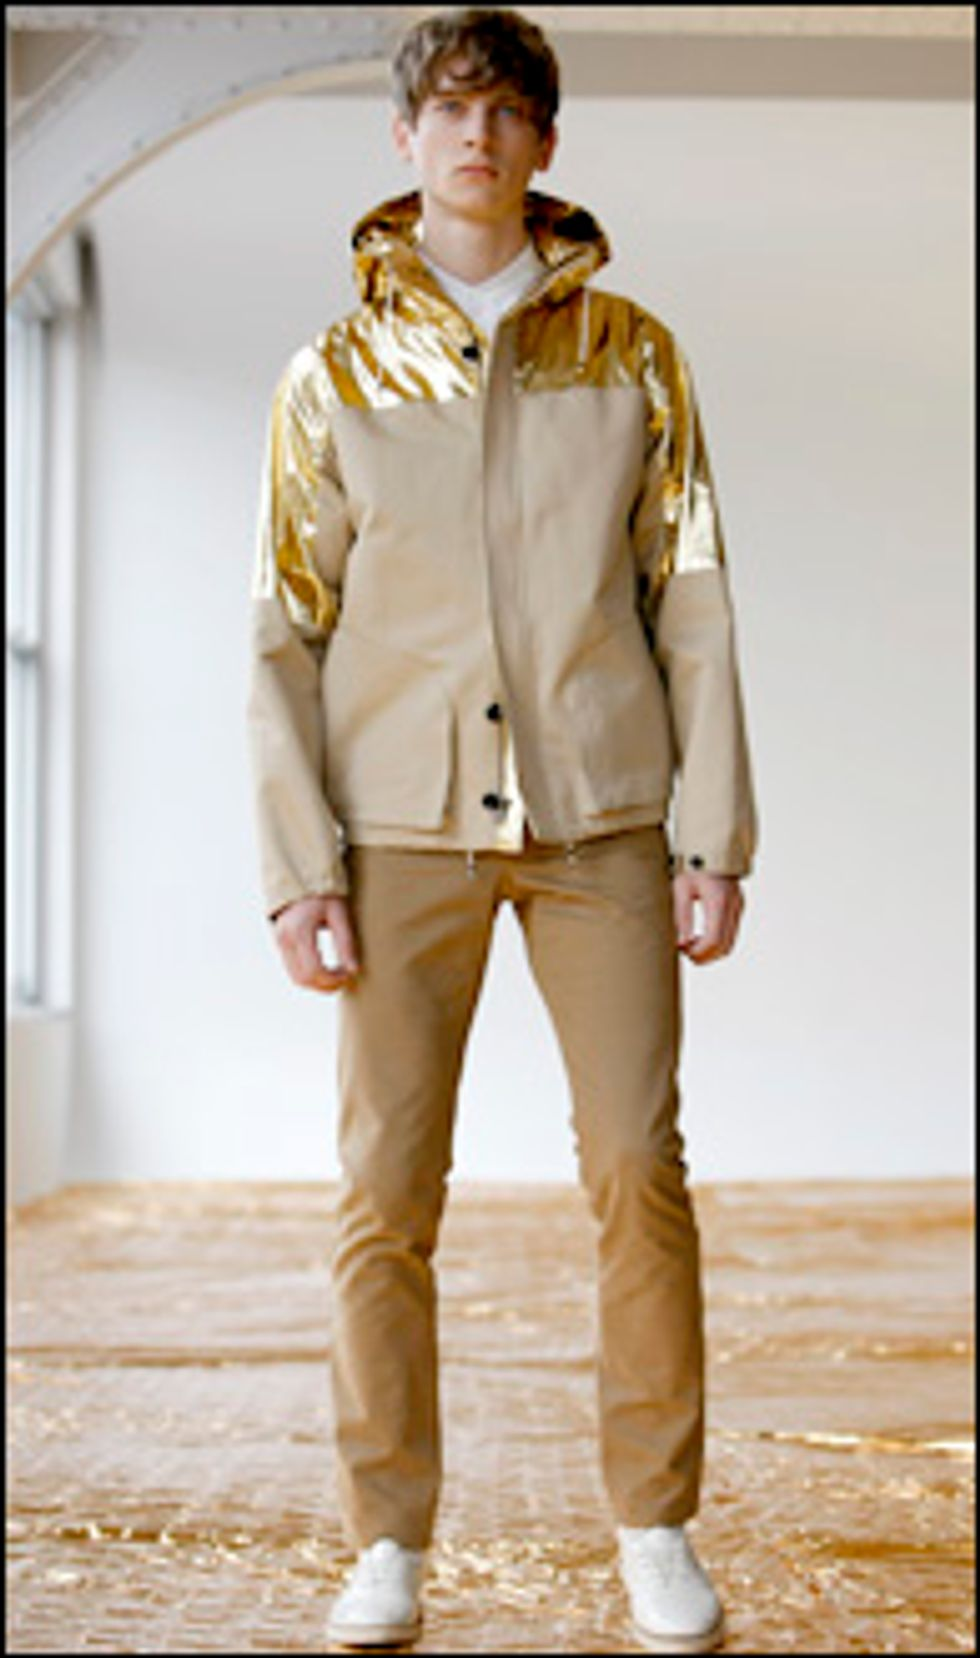 Mr. Mickey in Gold Lame Patrik Ervell for Fall 08?